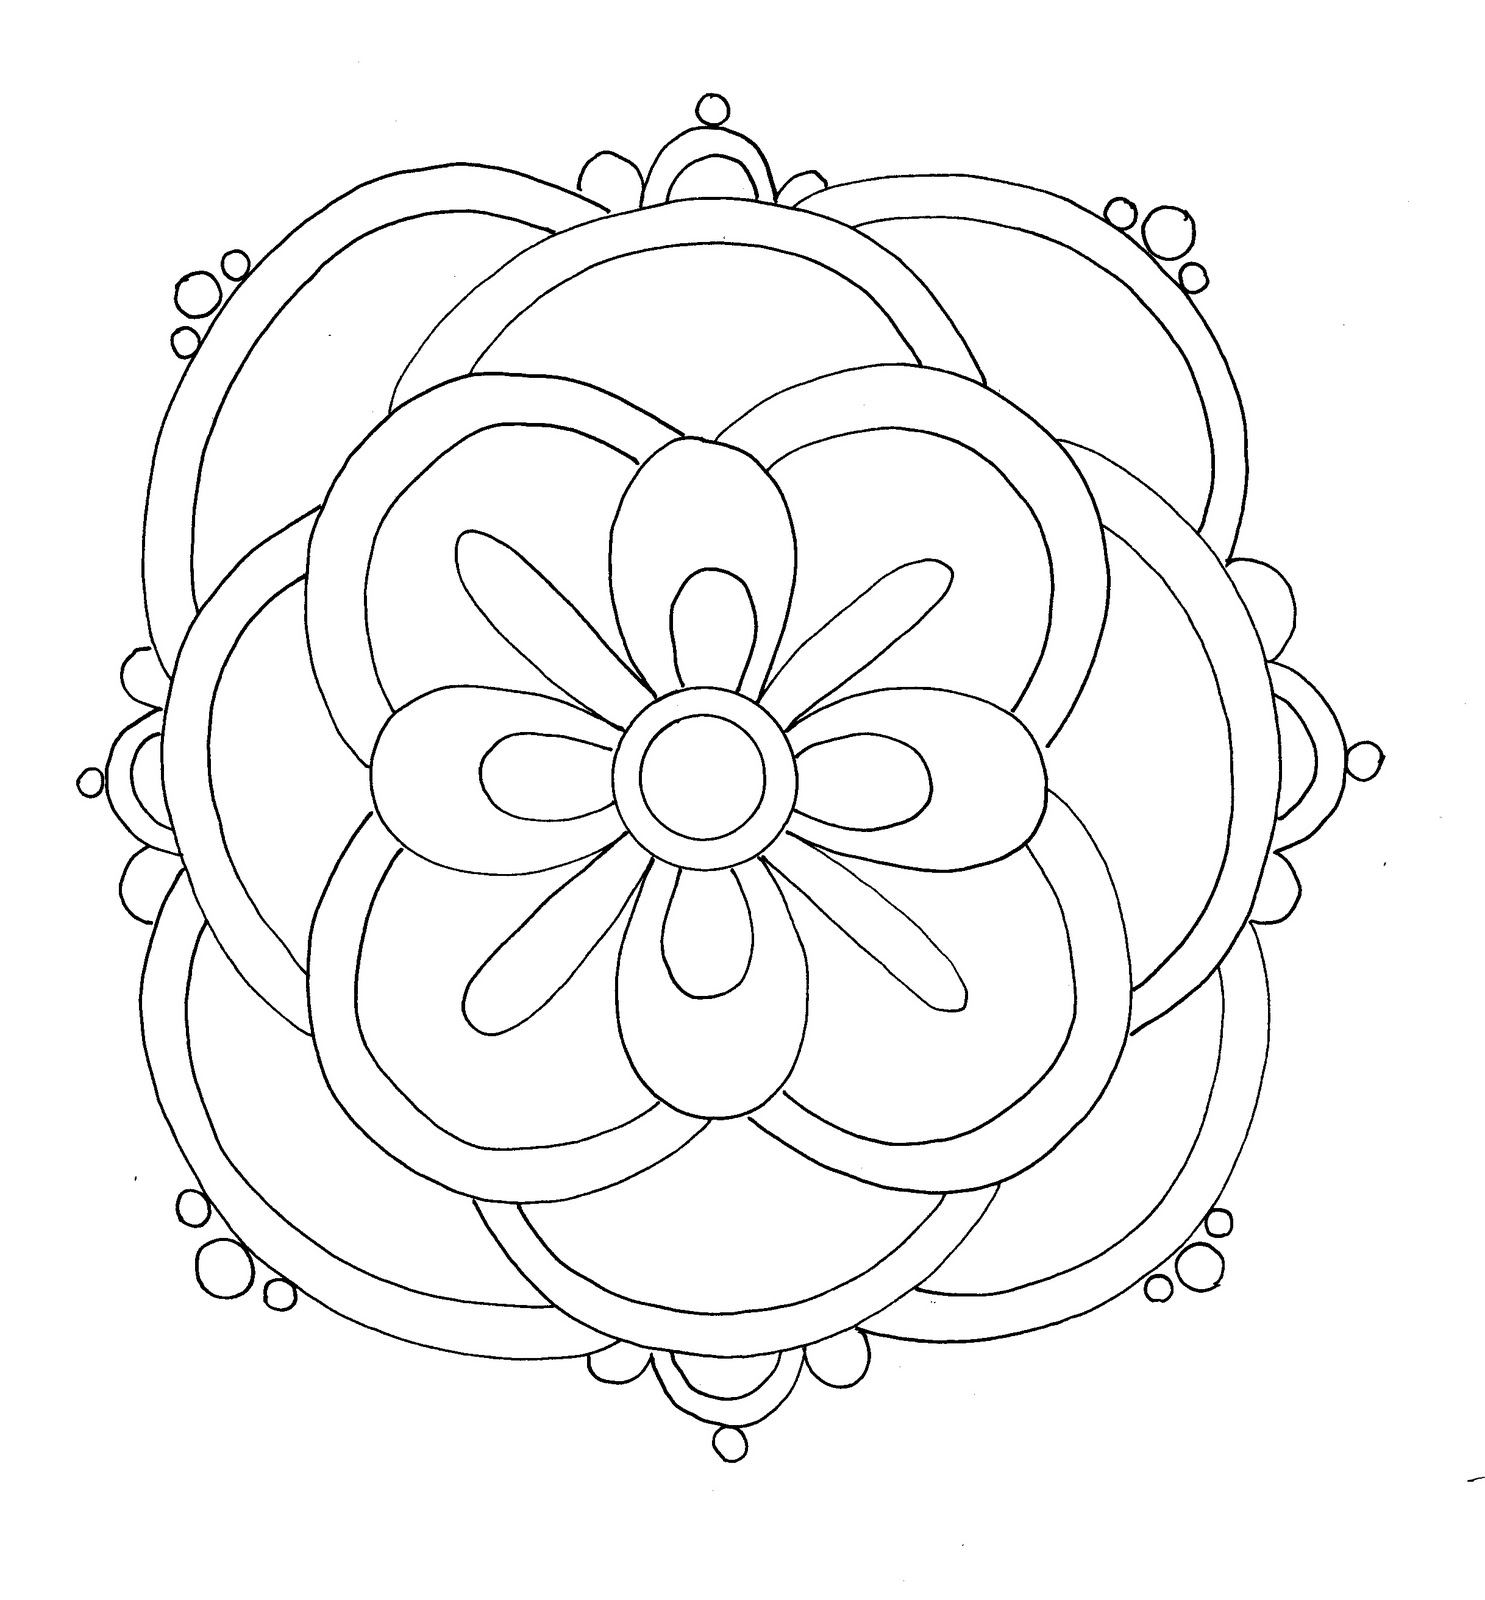 Free Rangoli Patterns Coloring Pages Rangoli Designs Printable Coloring Pages